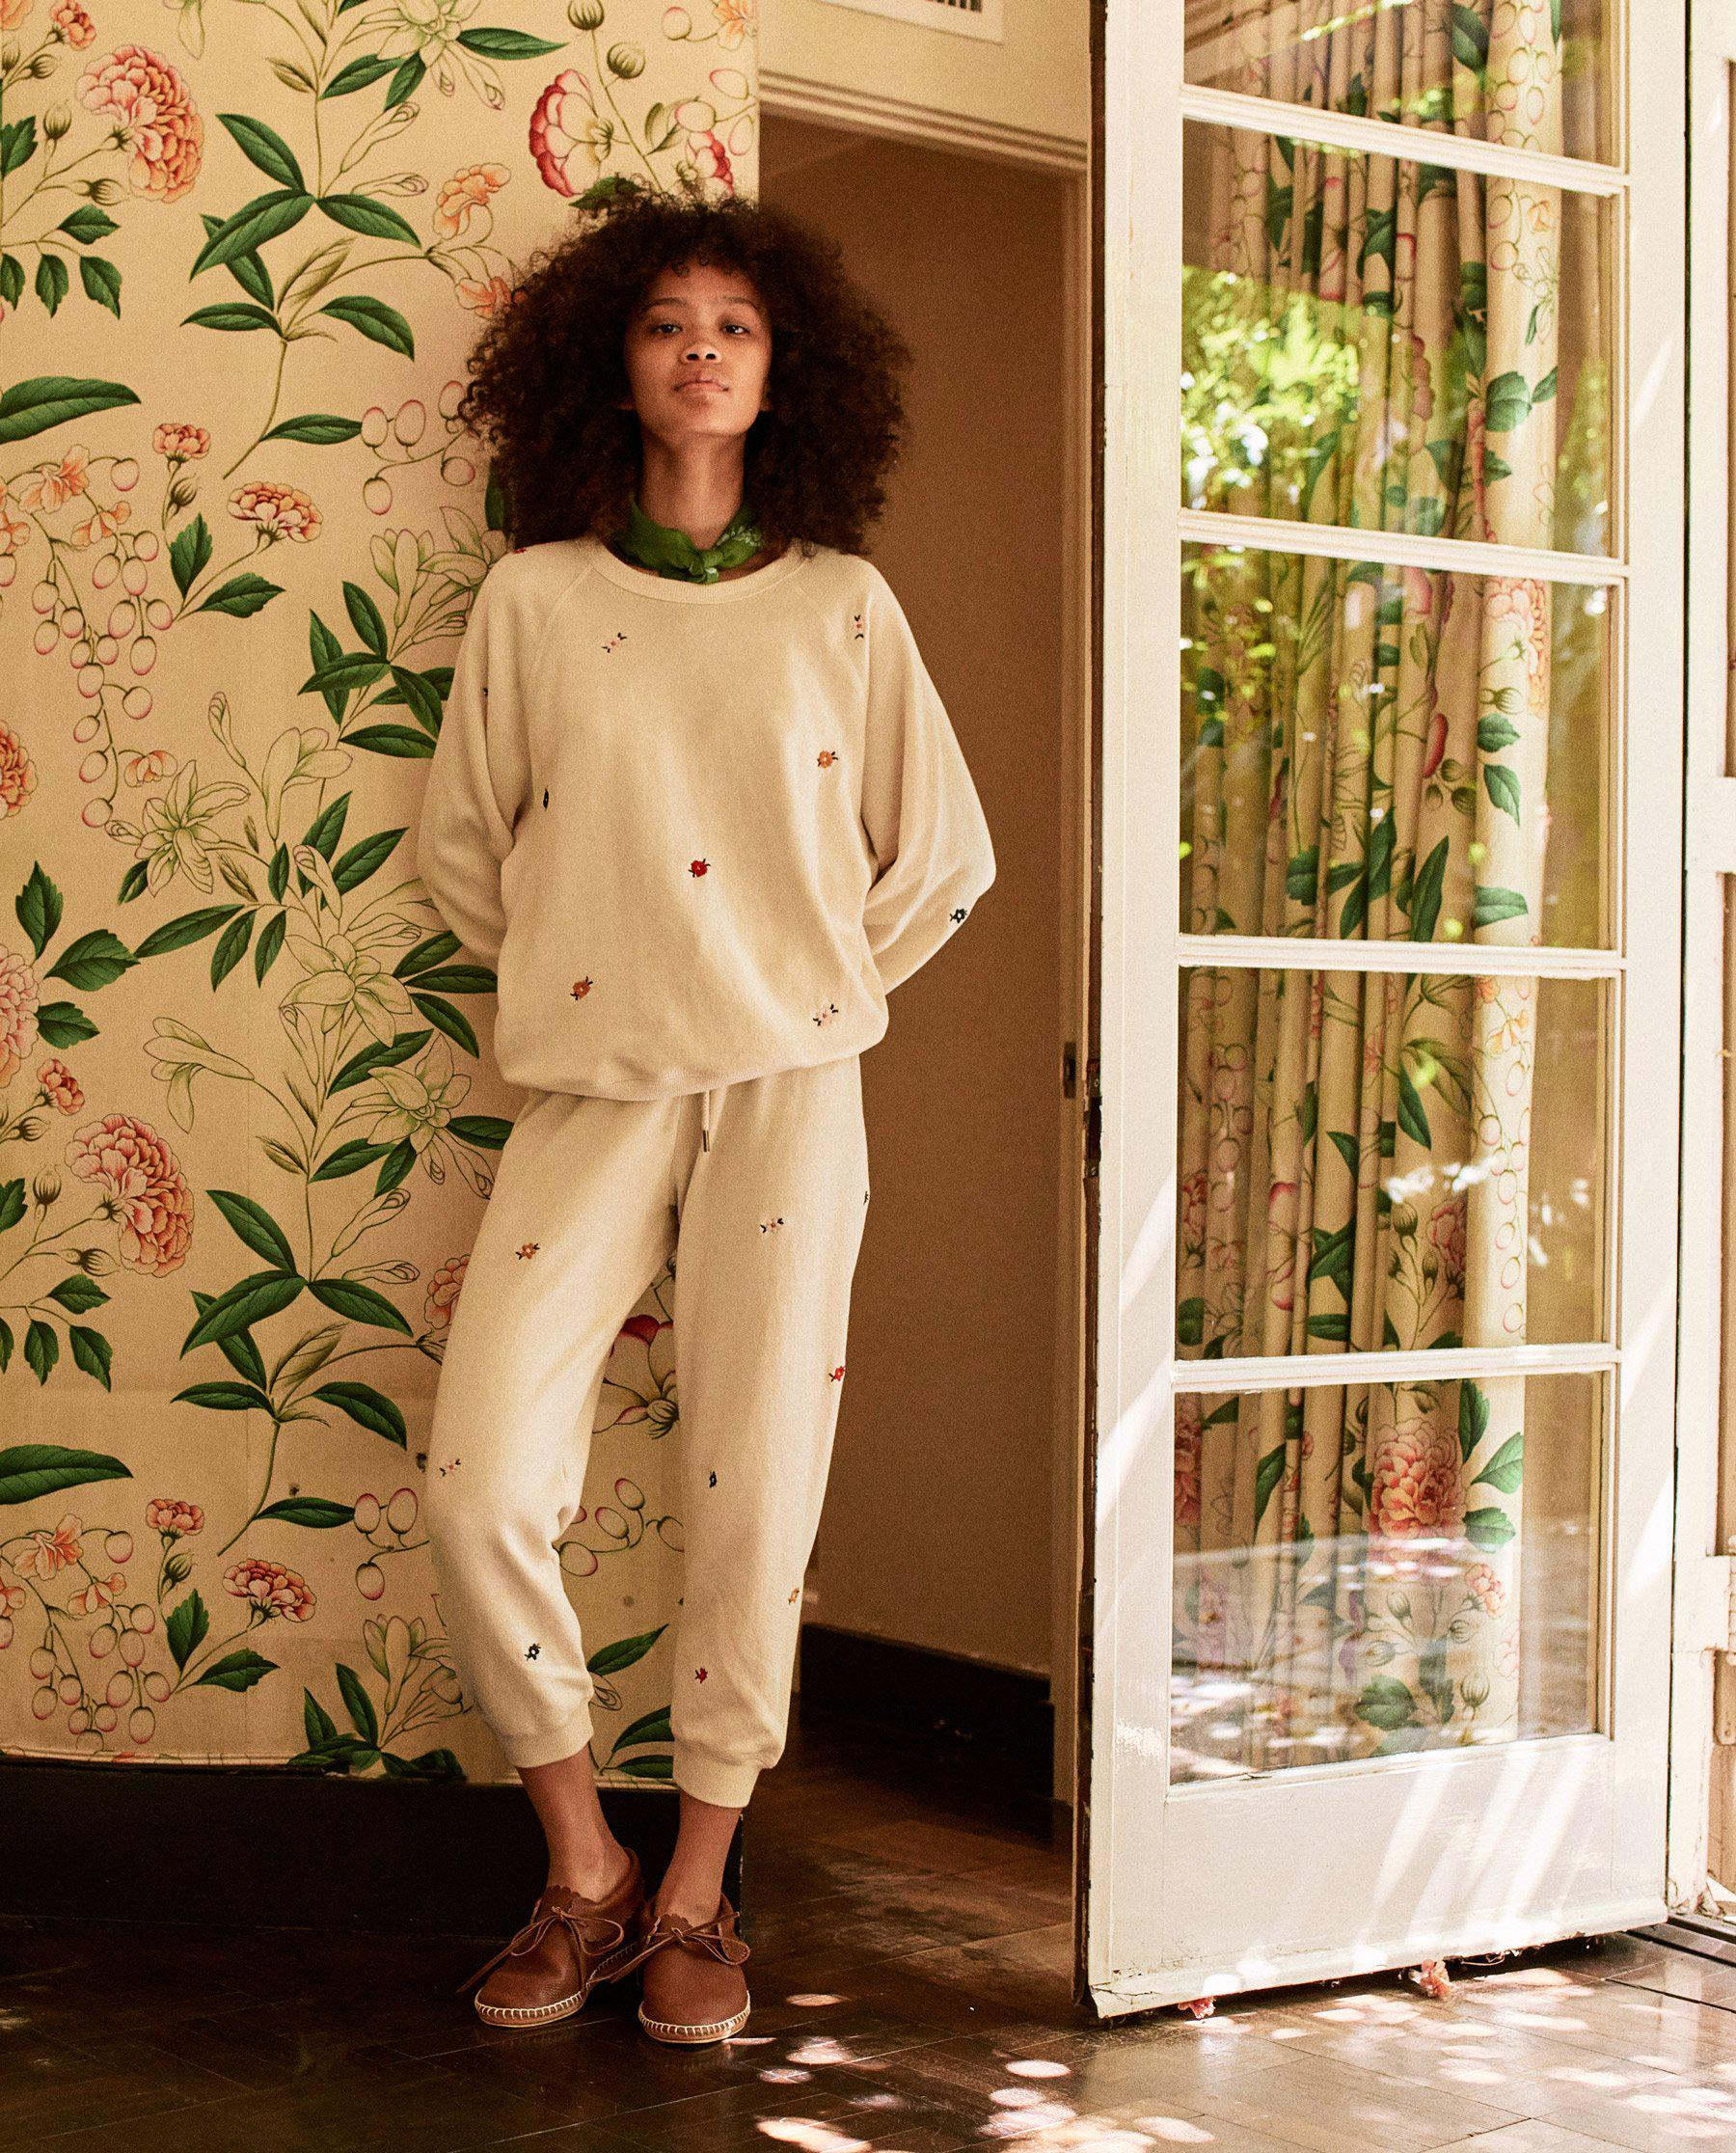 The Cropped Sweatpant. Embroidered -- Washed White with Seed Floral Embroidery